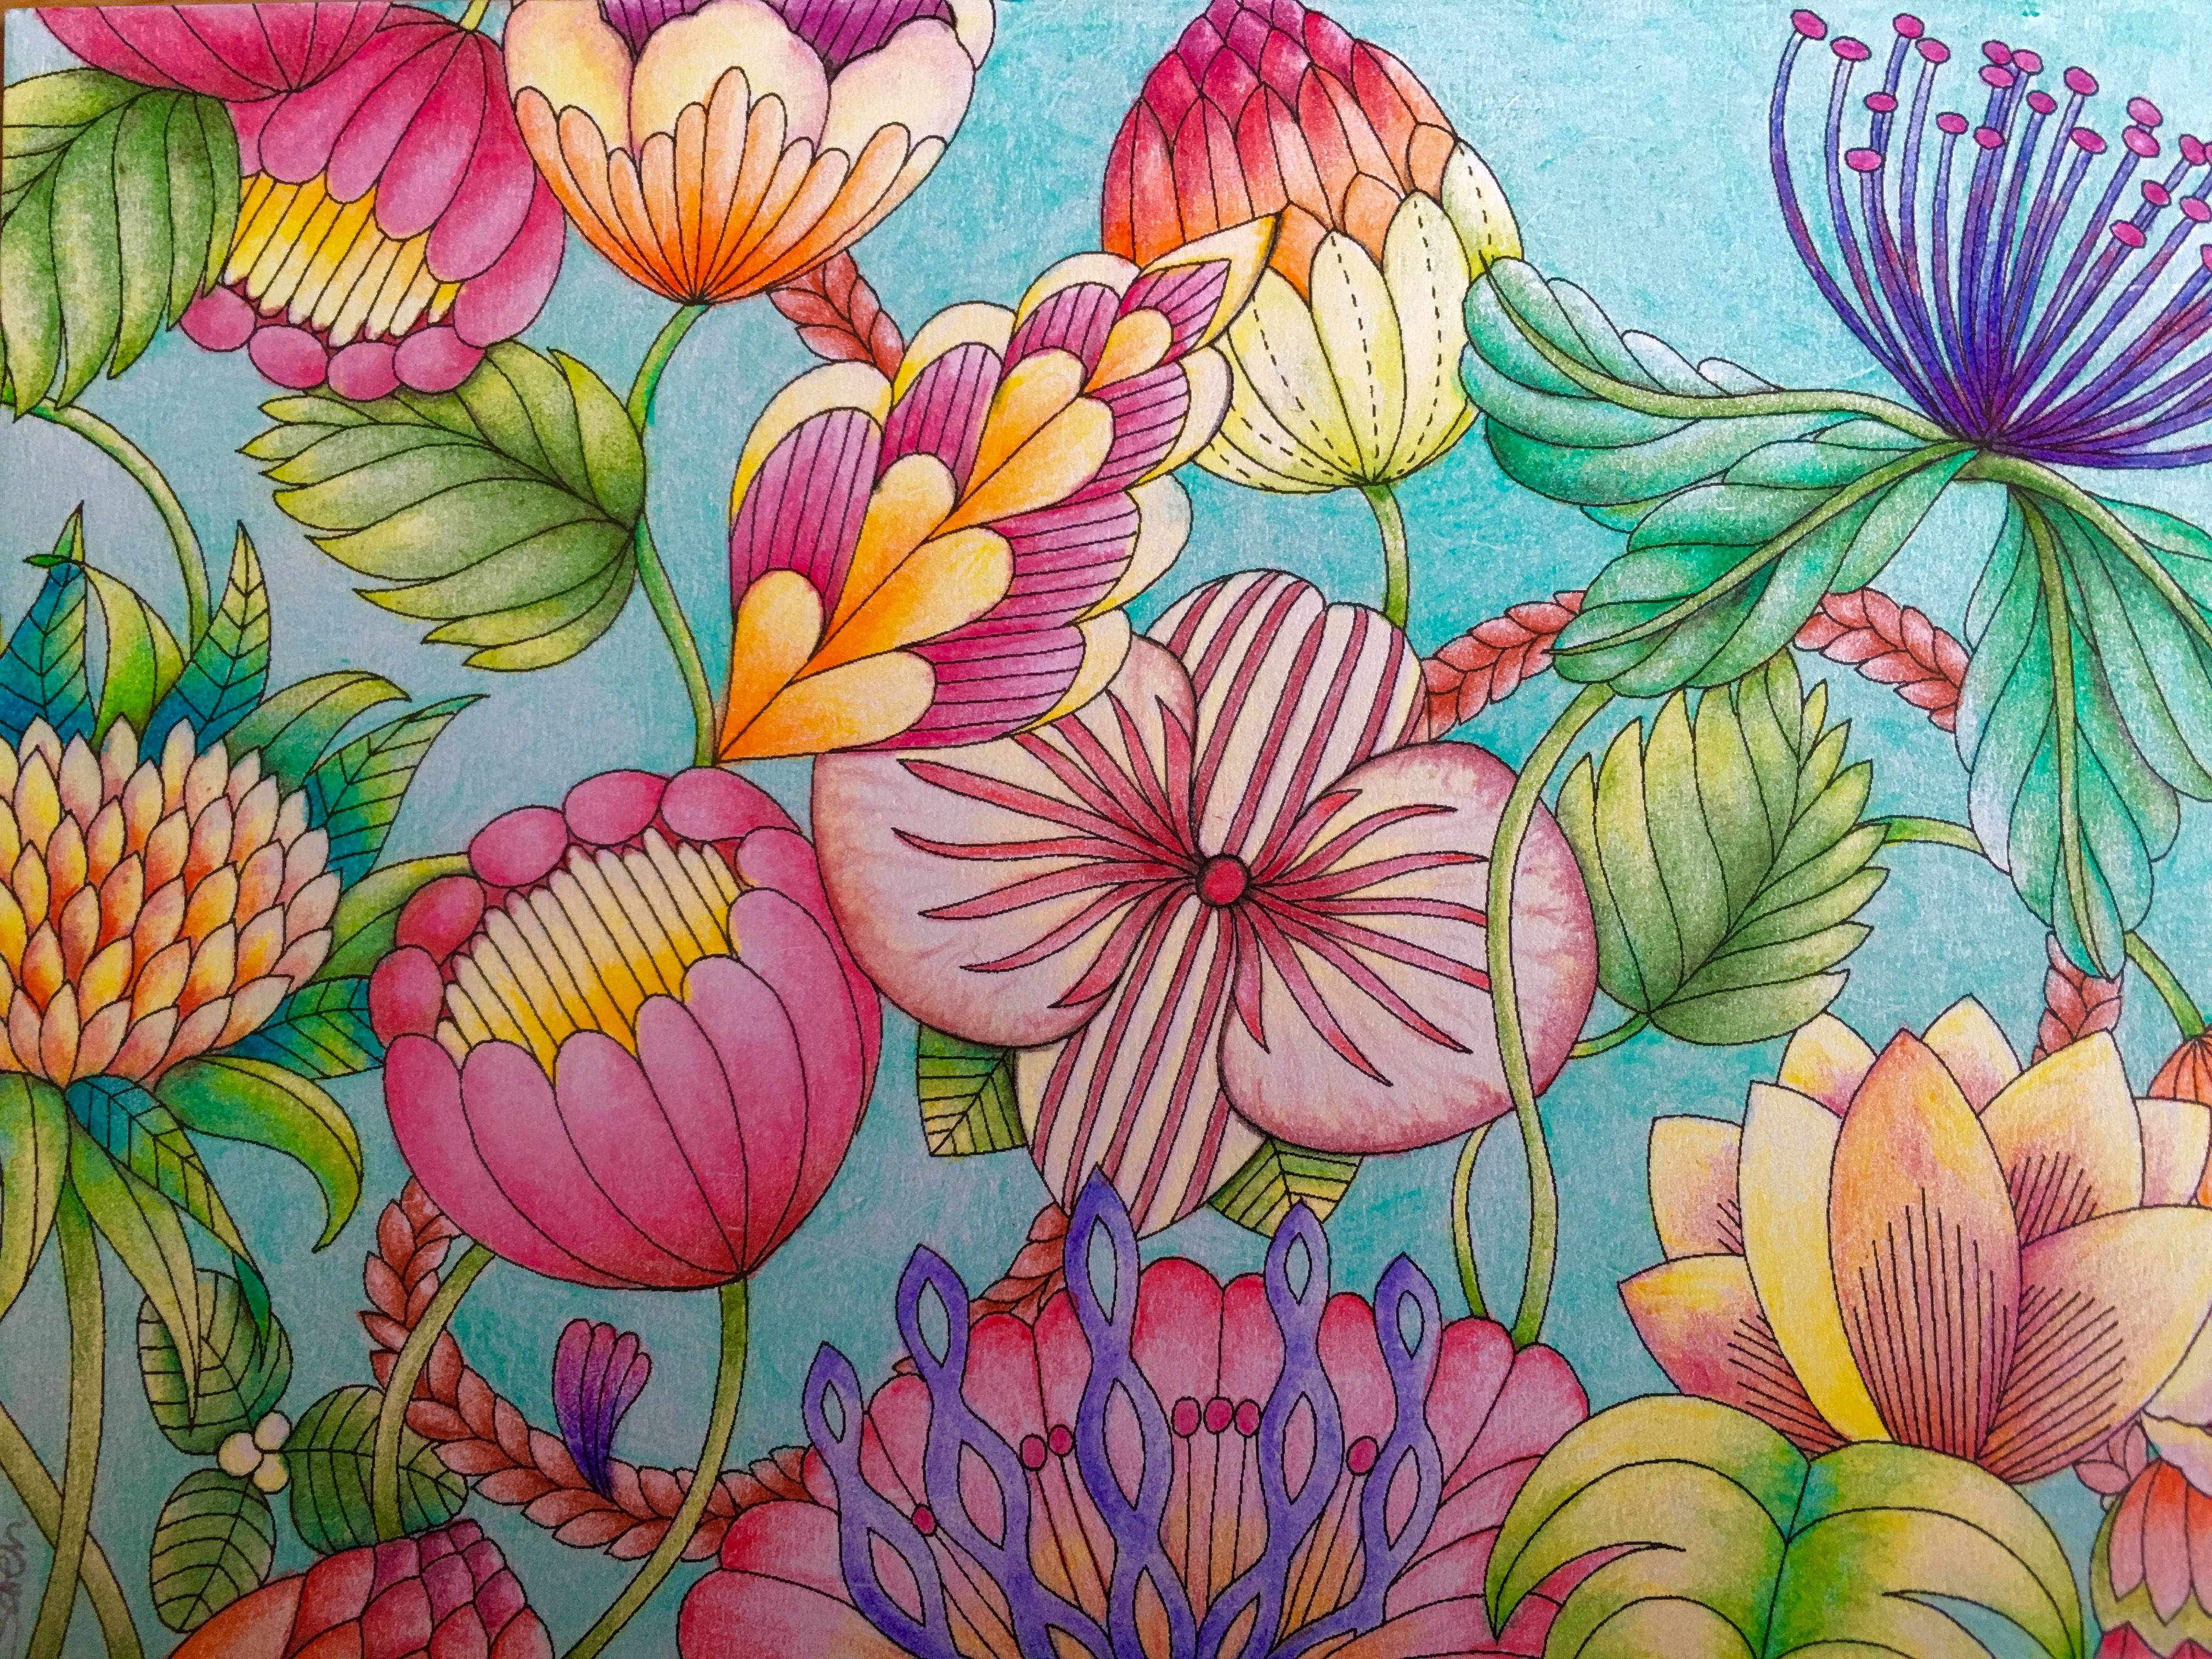 Millie Marotta Tropical Wonderland Flowers Postcard Lyra Rembrant Faber Castell Polychromos Colour Pencils